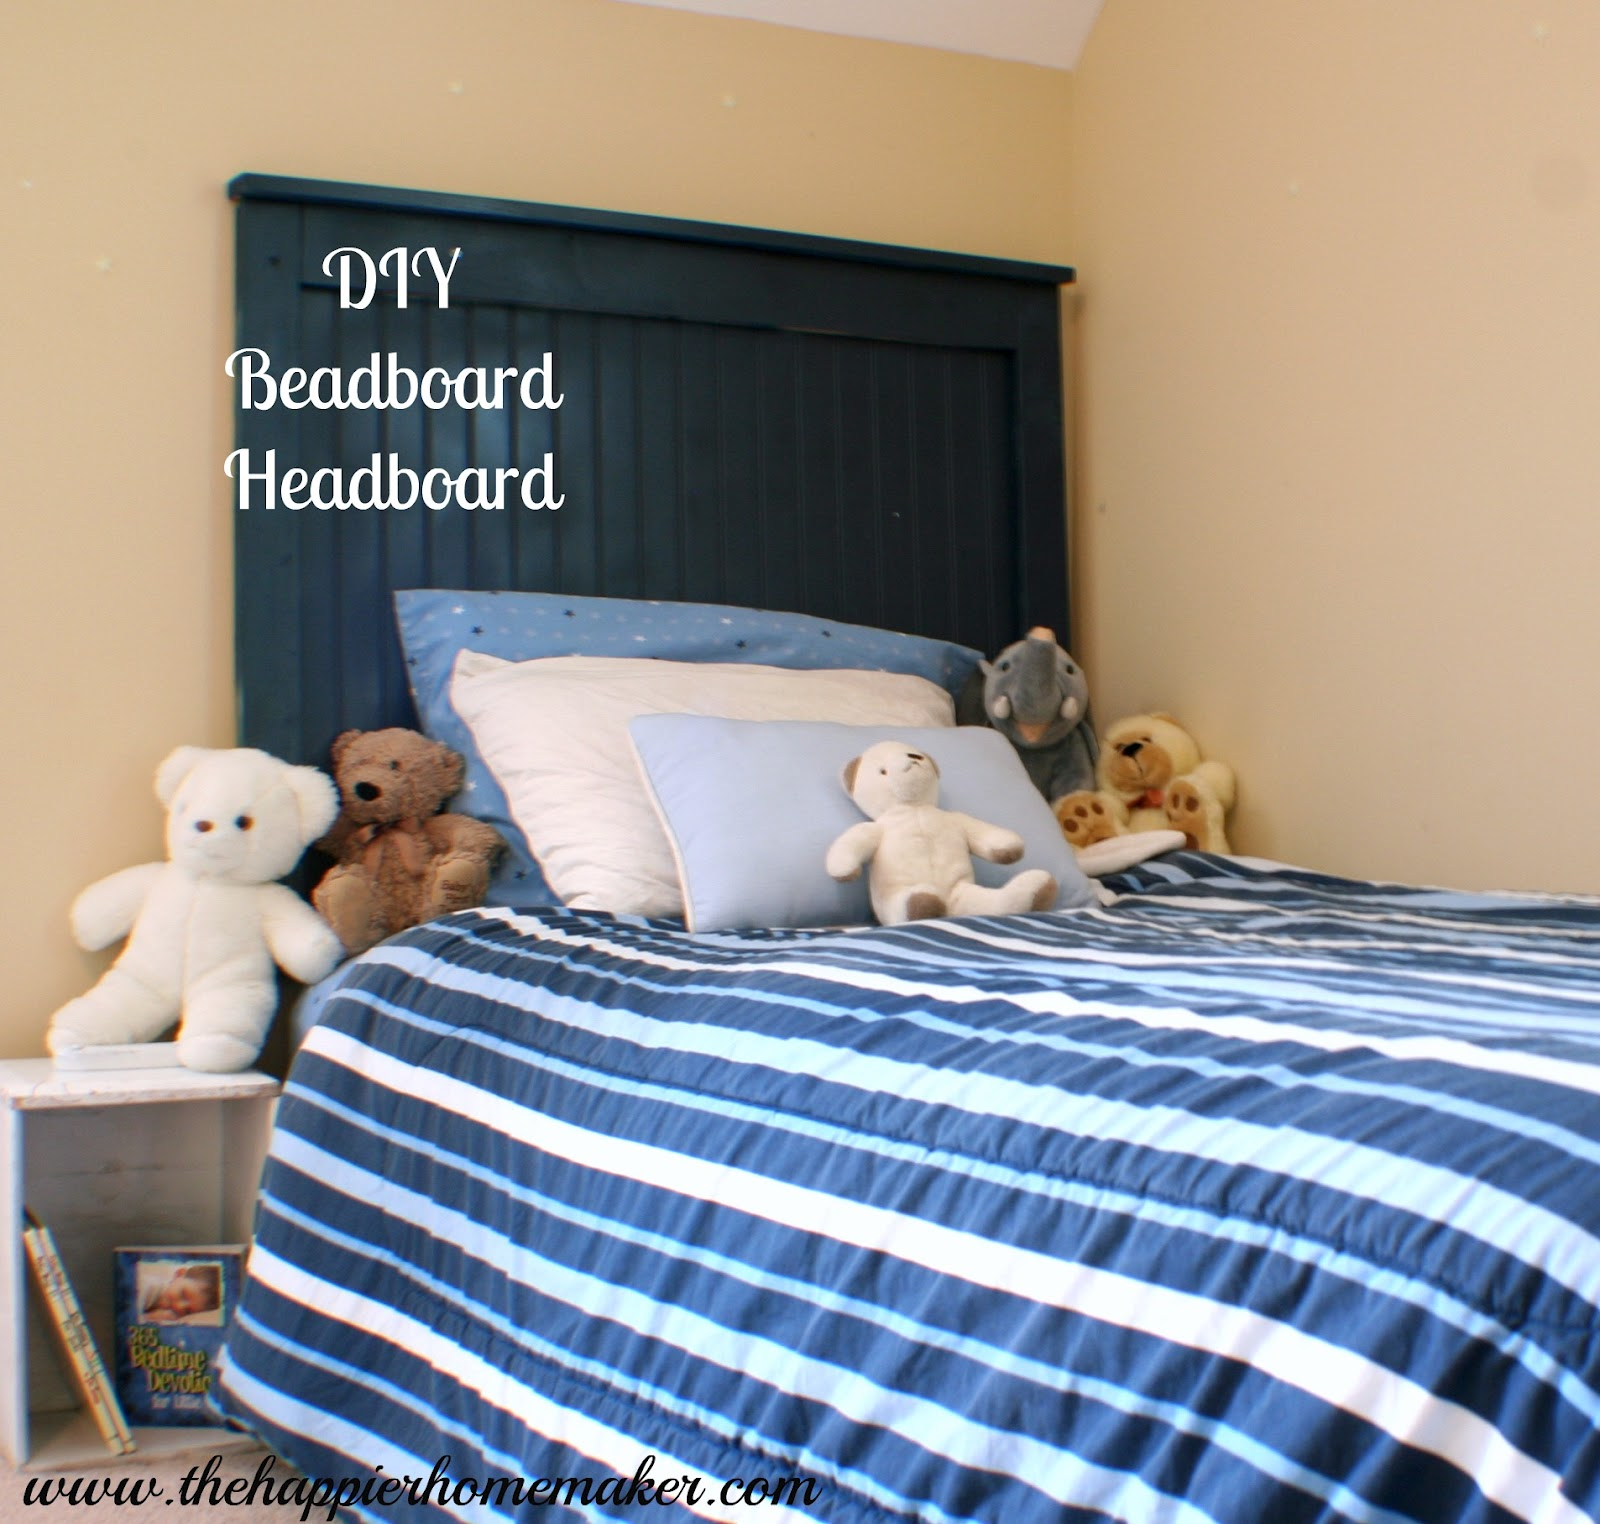 side view of navy blue twin sized diy beadboard headboard with blue striped bedding and stuffed animals